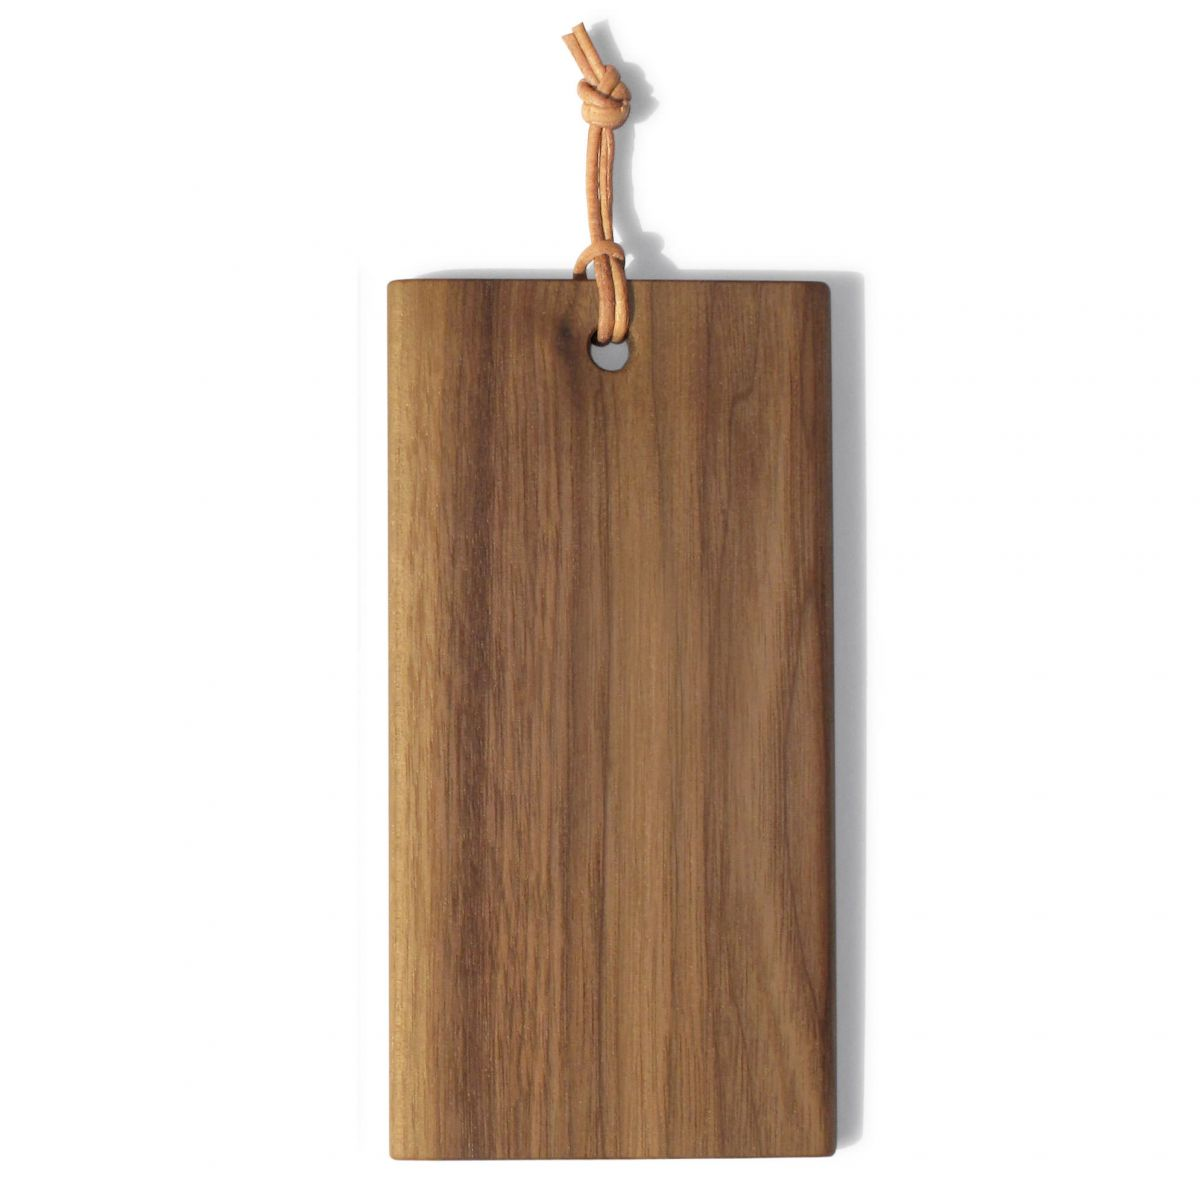 Tiny wooden utting Board